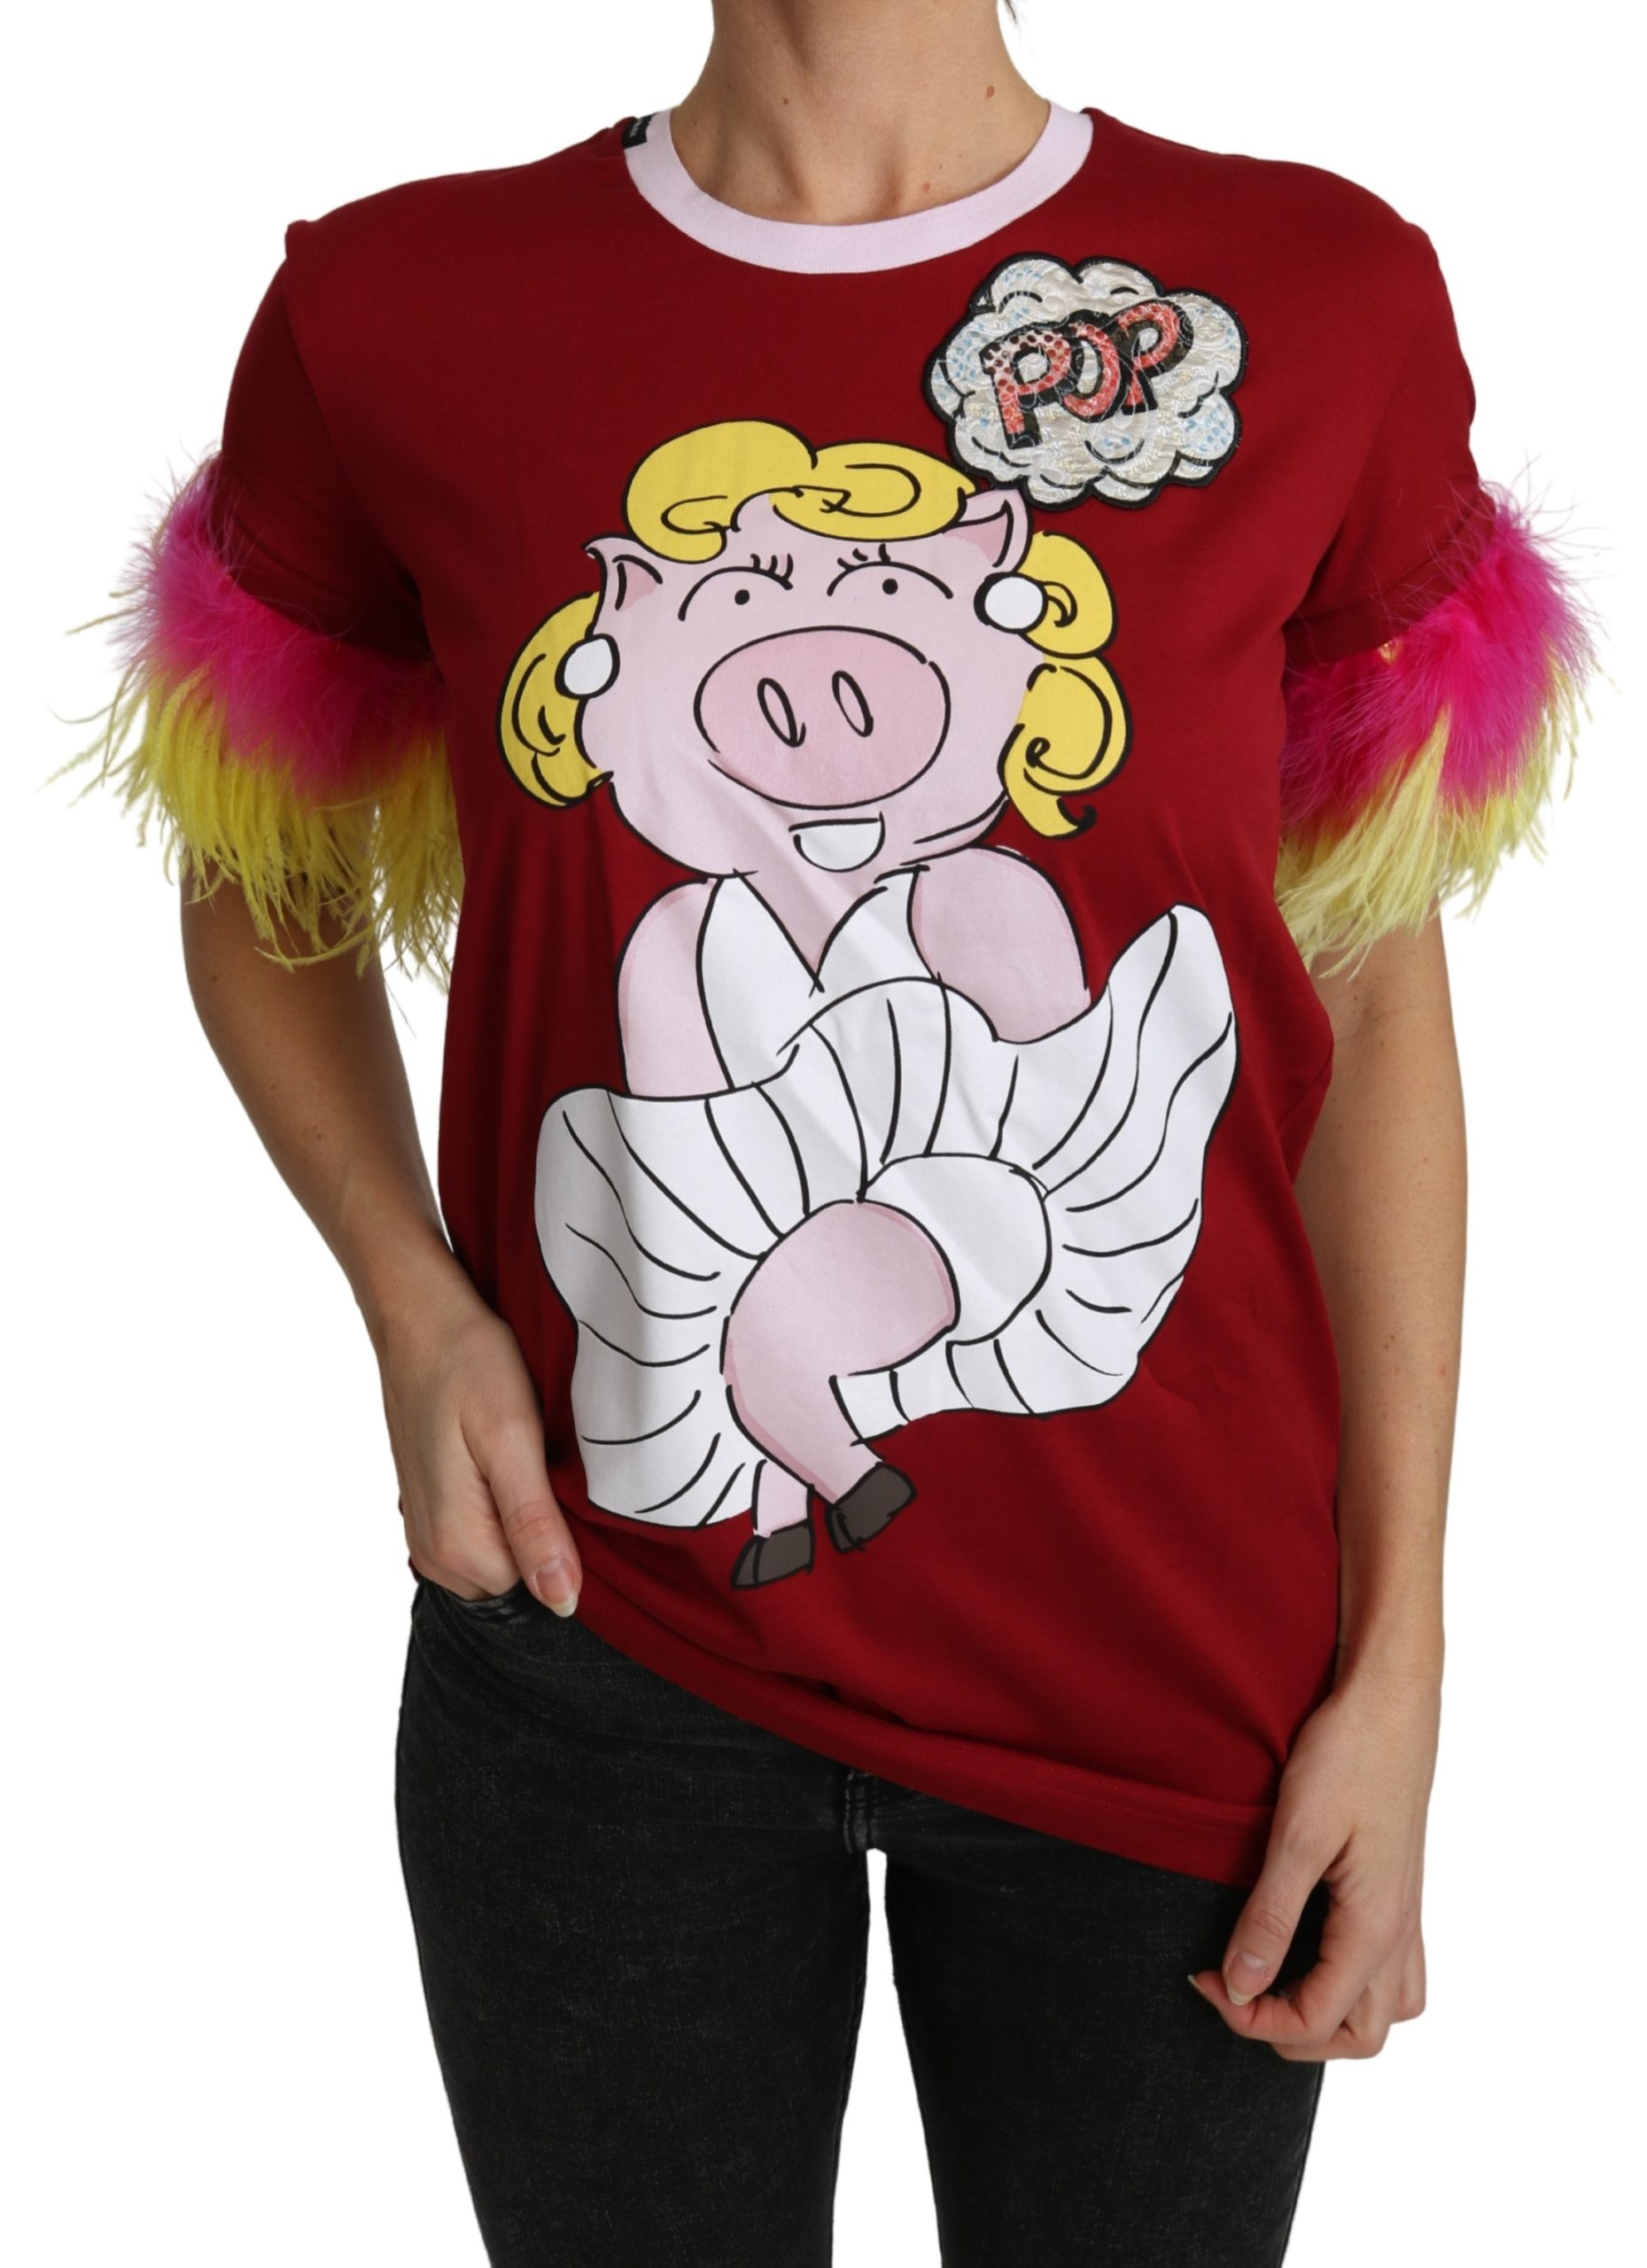 Dolce & Gabbana Women's Pig Print Feather Sleeves T-Shirt Red TSH4846 - IT36   XS